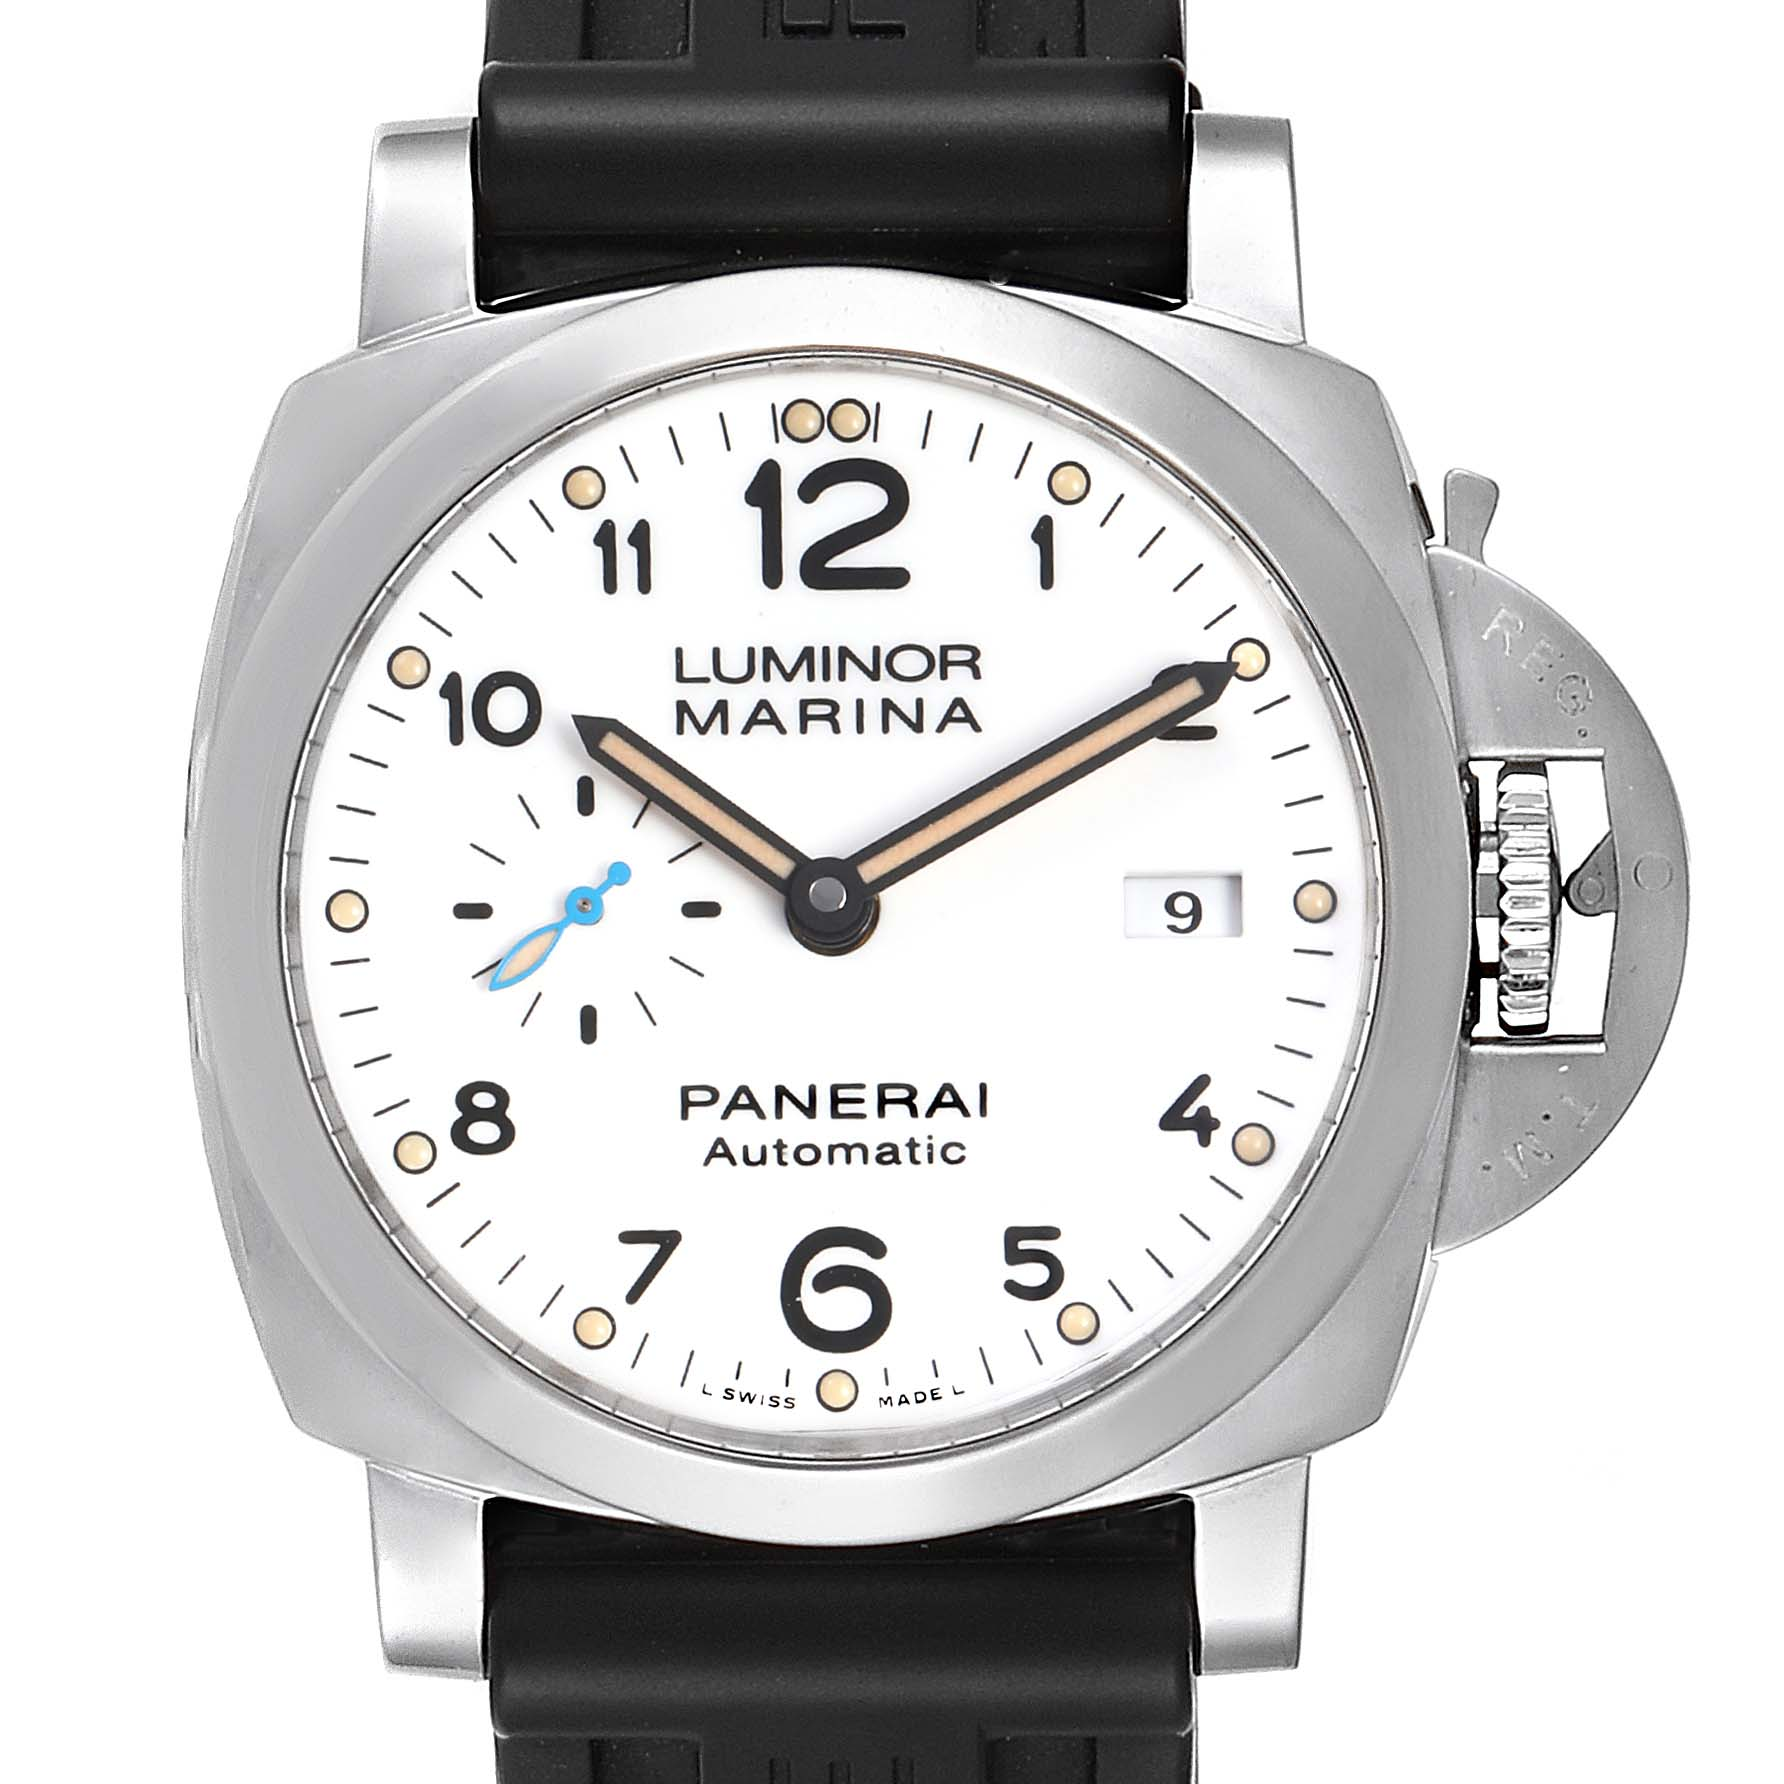 Panerai Luminor Marina 1950 White Dial Automatic Watch PAM01499 Box Papers